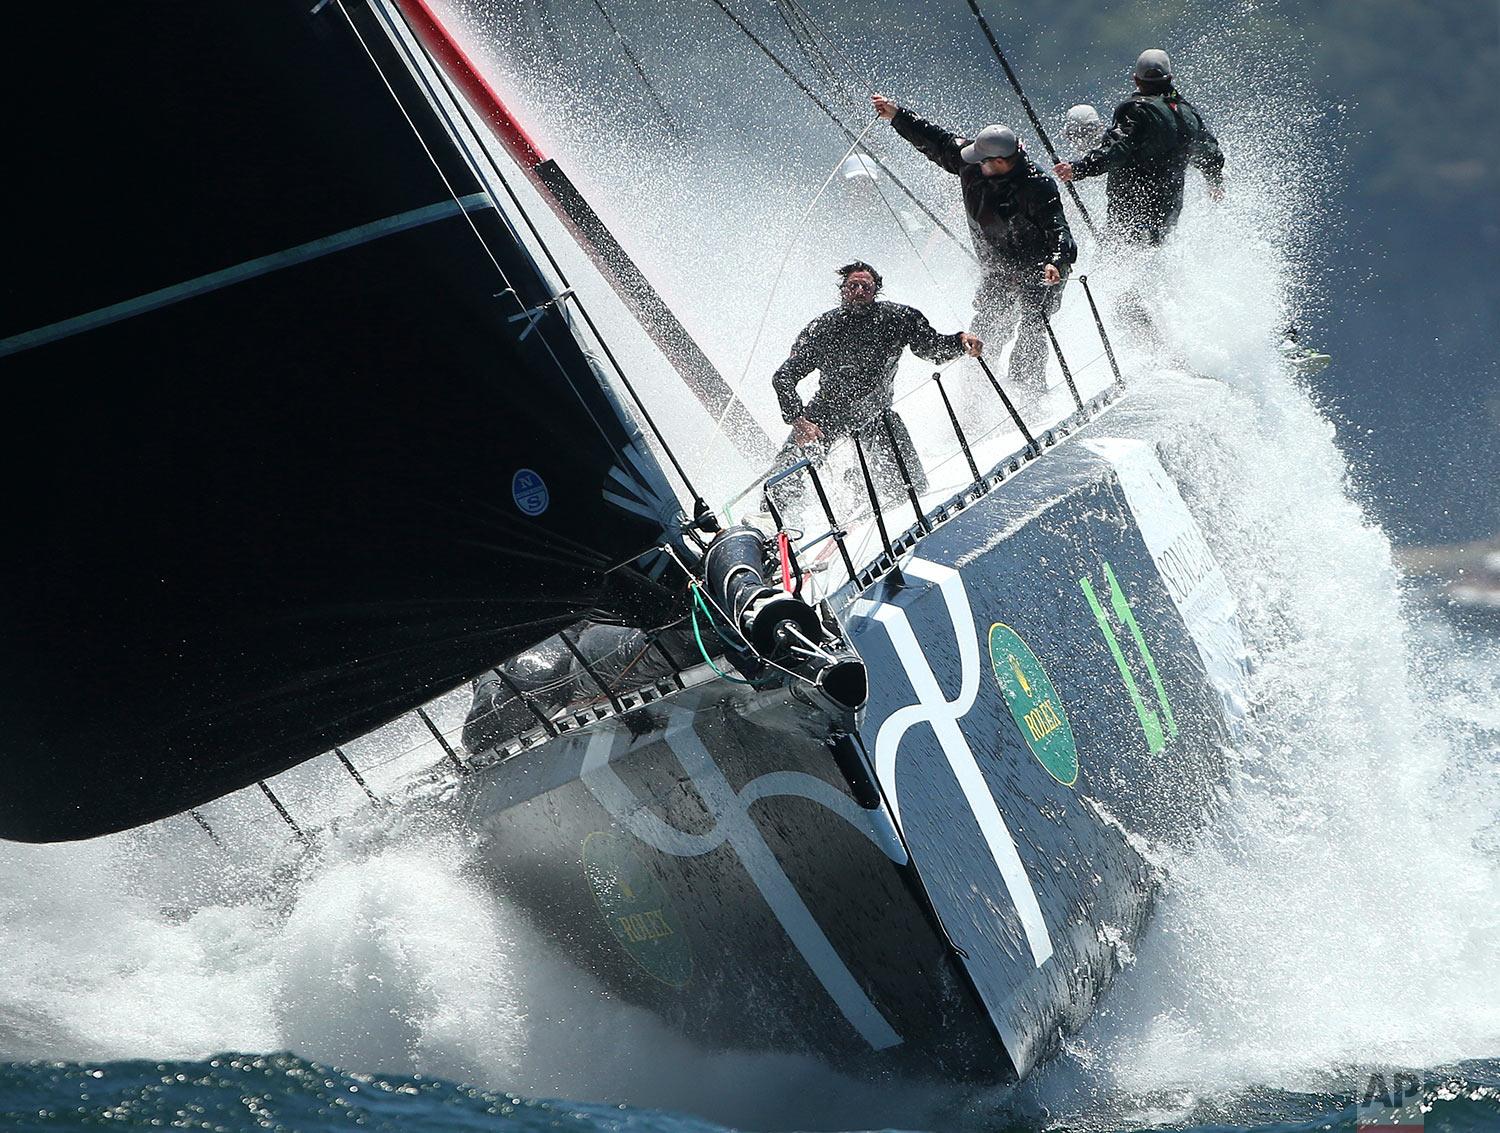 In this Monday, Dec. 26, 2016 photo, the yacht Loyal makes its way through the heads during the start of the Sydney Hobart yacht race in Sydney, Australia. The 88 yachts started in the annual 628-nautical mile race to Australia's island state of Tasmania. (AP Photo/Rick Rycroft)